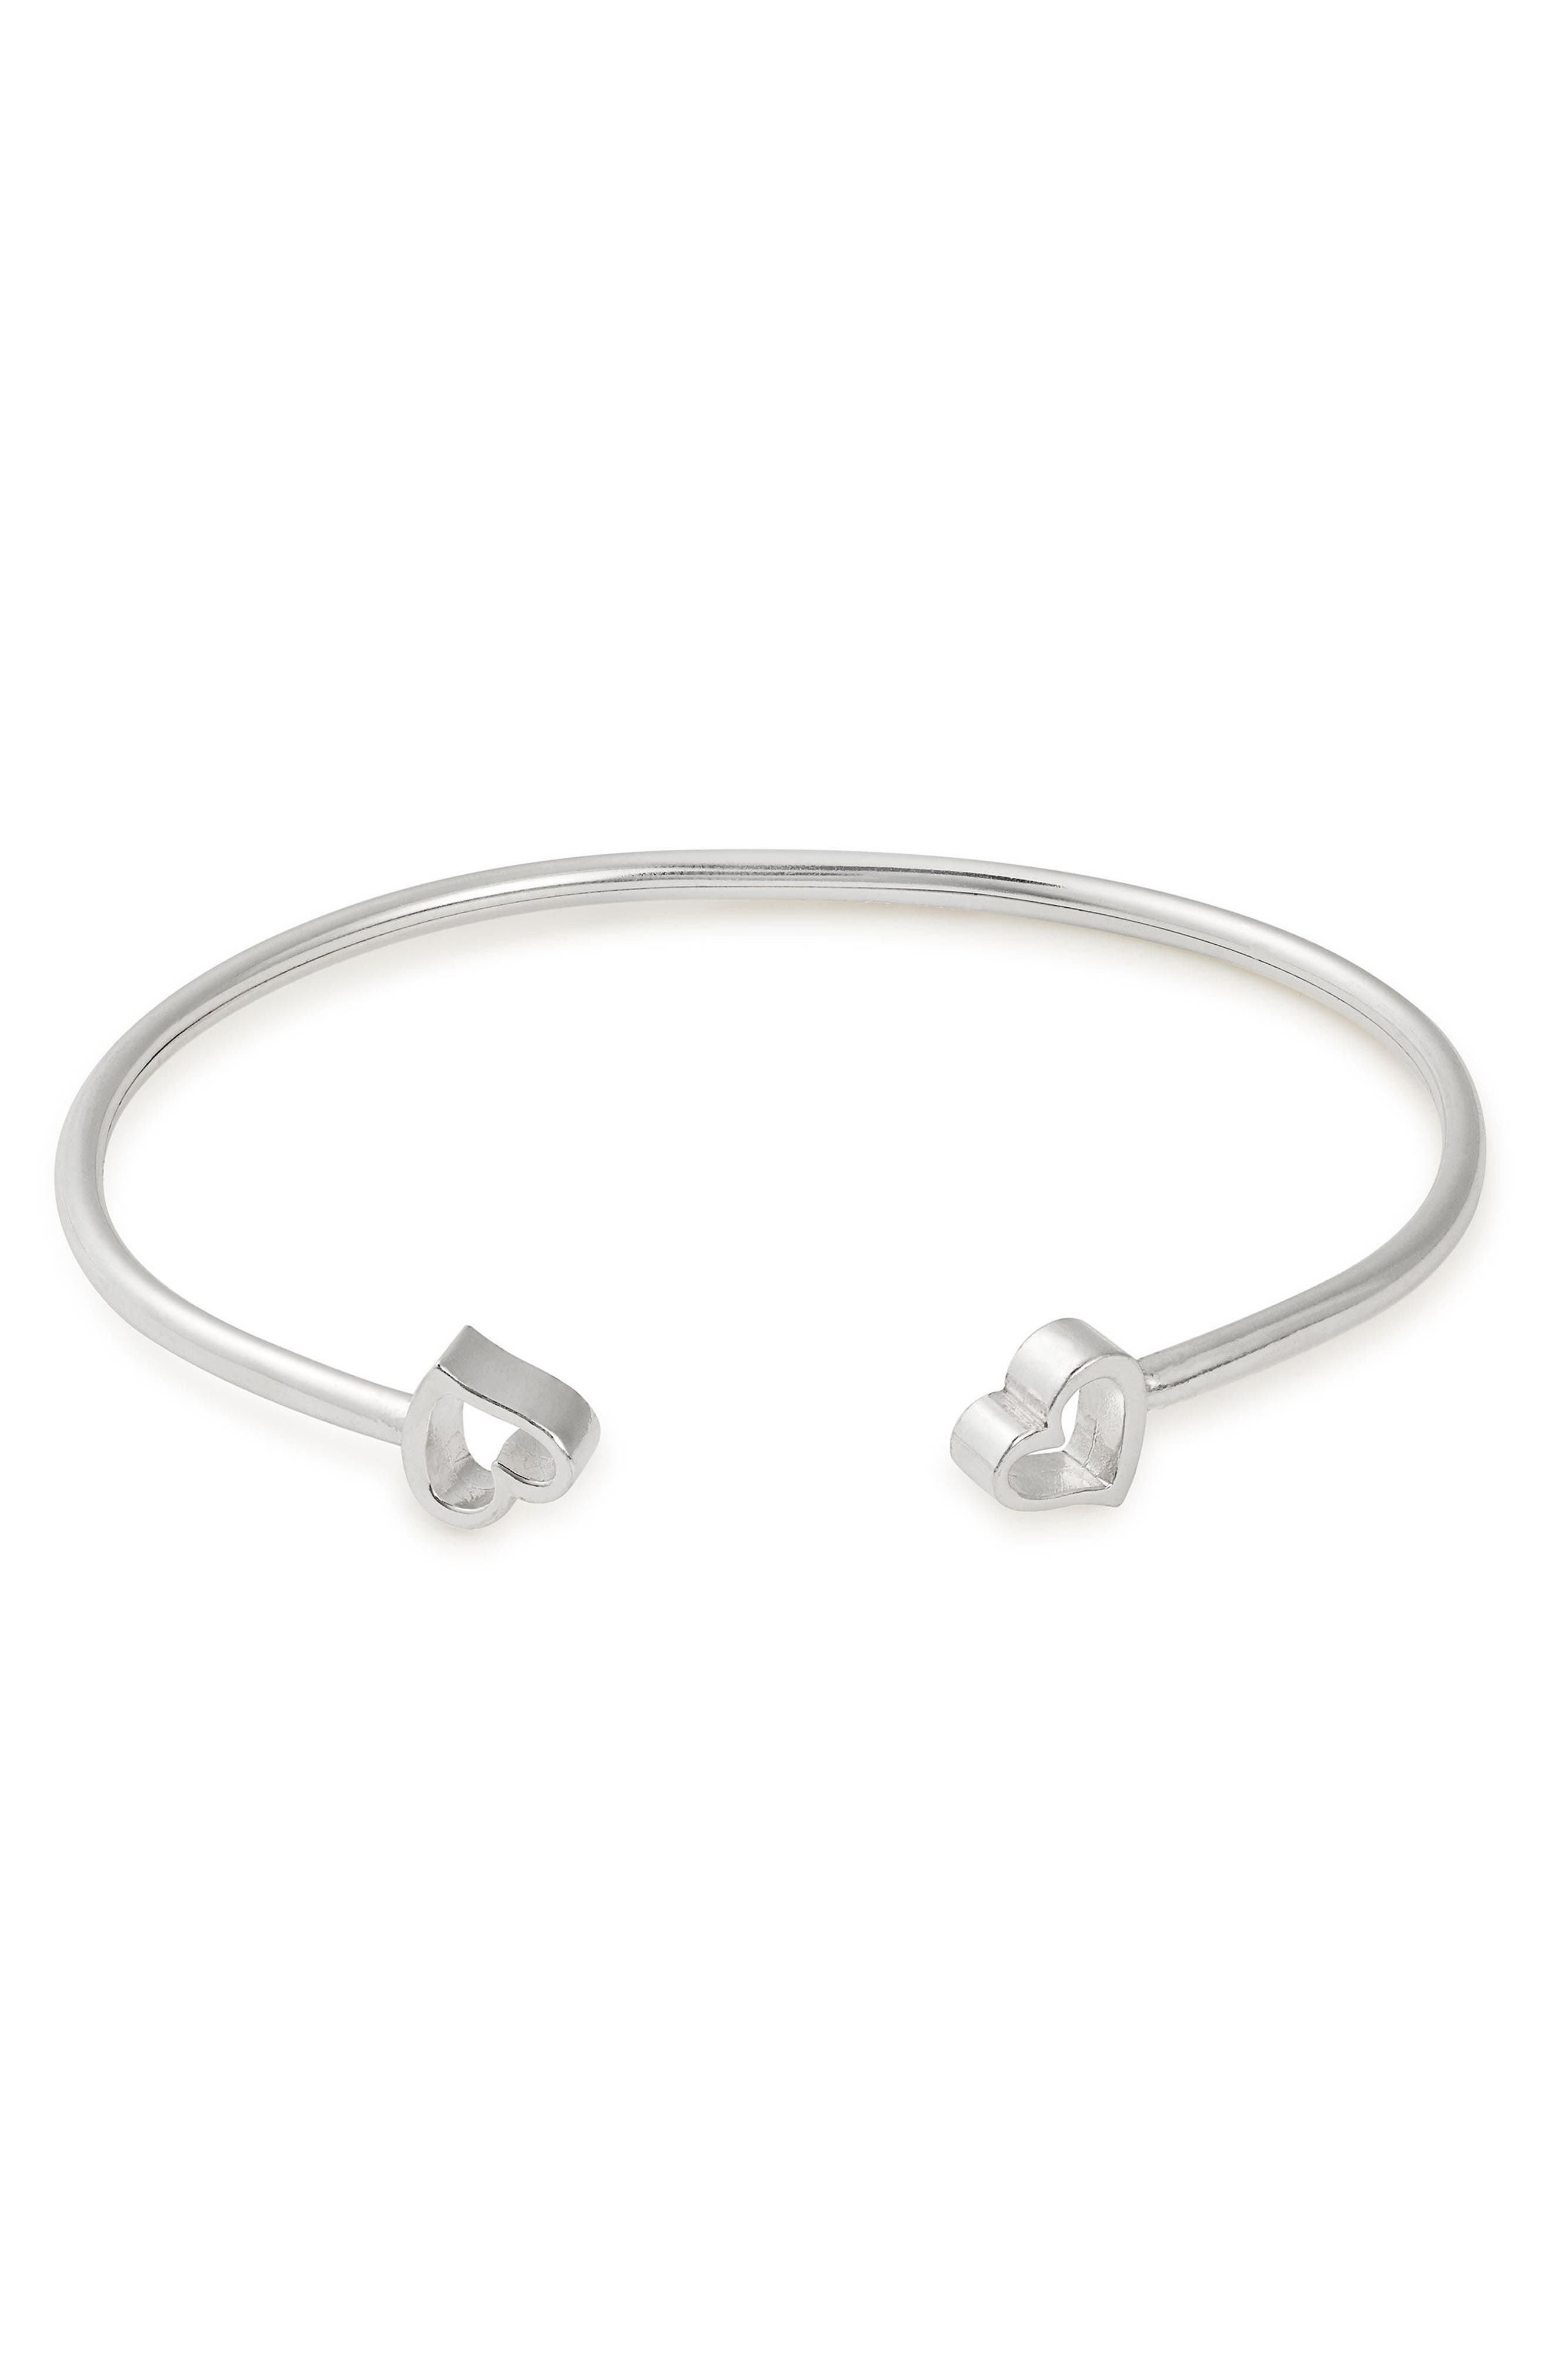 Formidable H Cuff,                         Main,                         color, SILVER